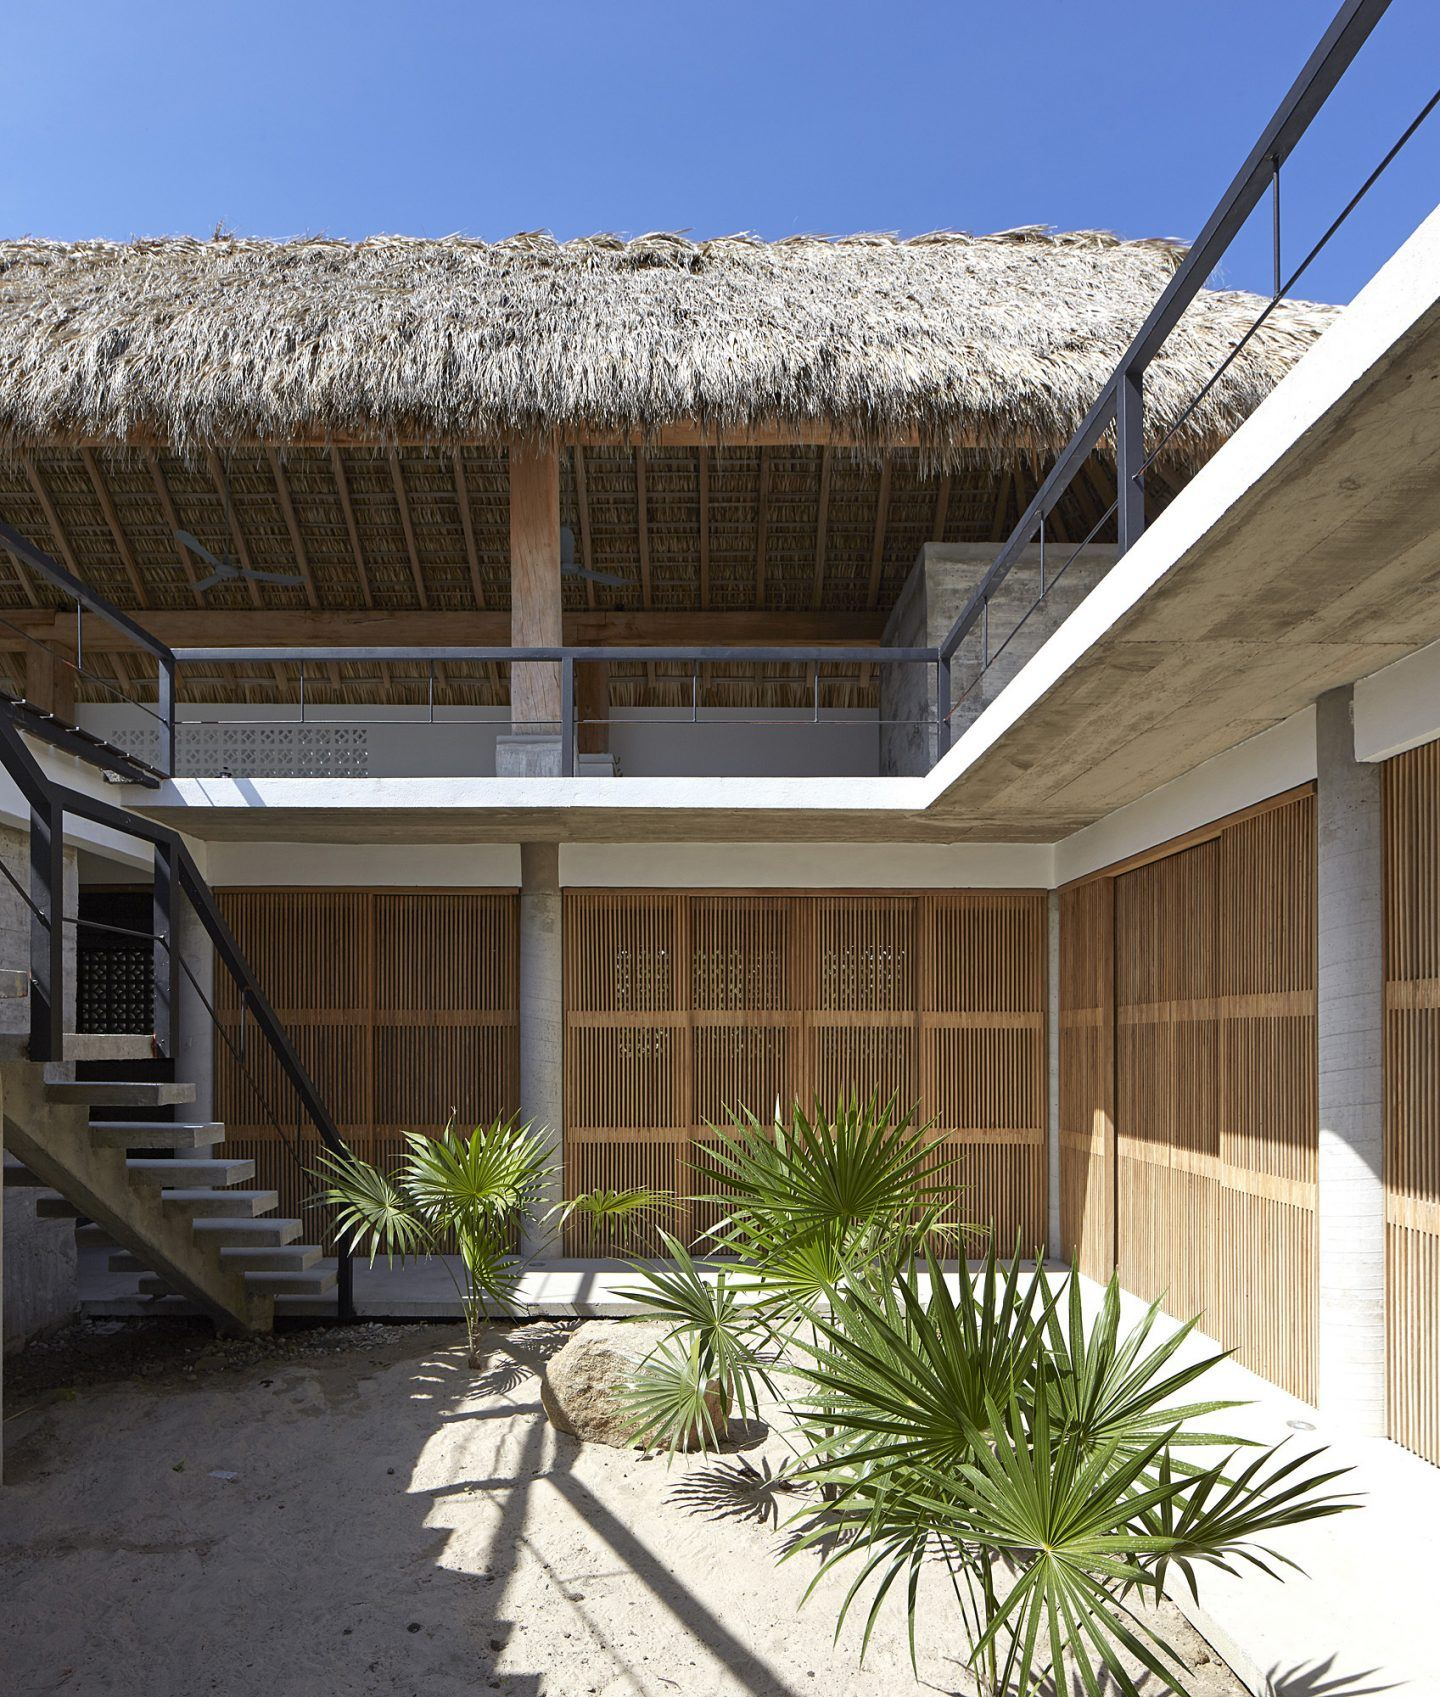 IGNANT-Travel-CasaCal-18